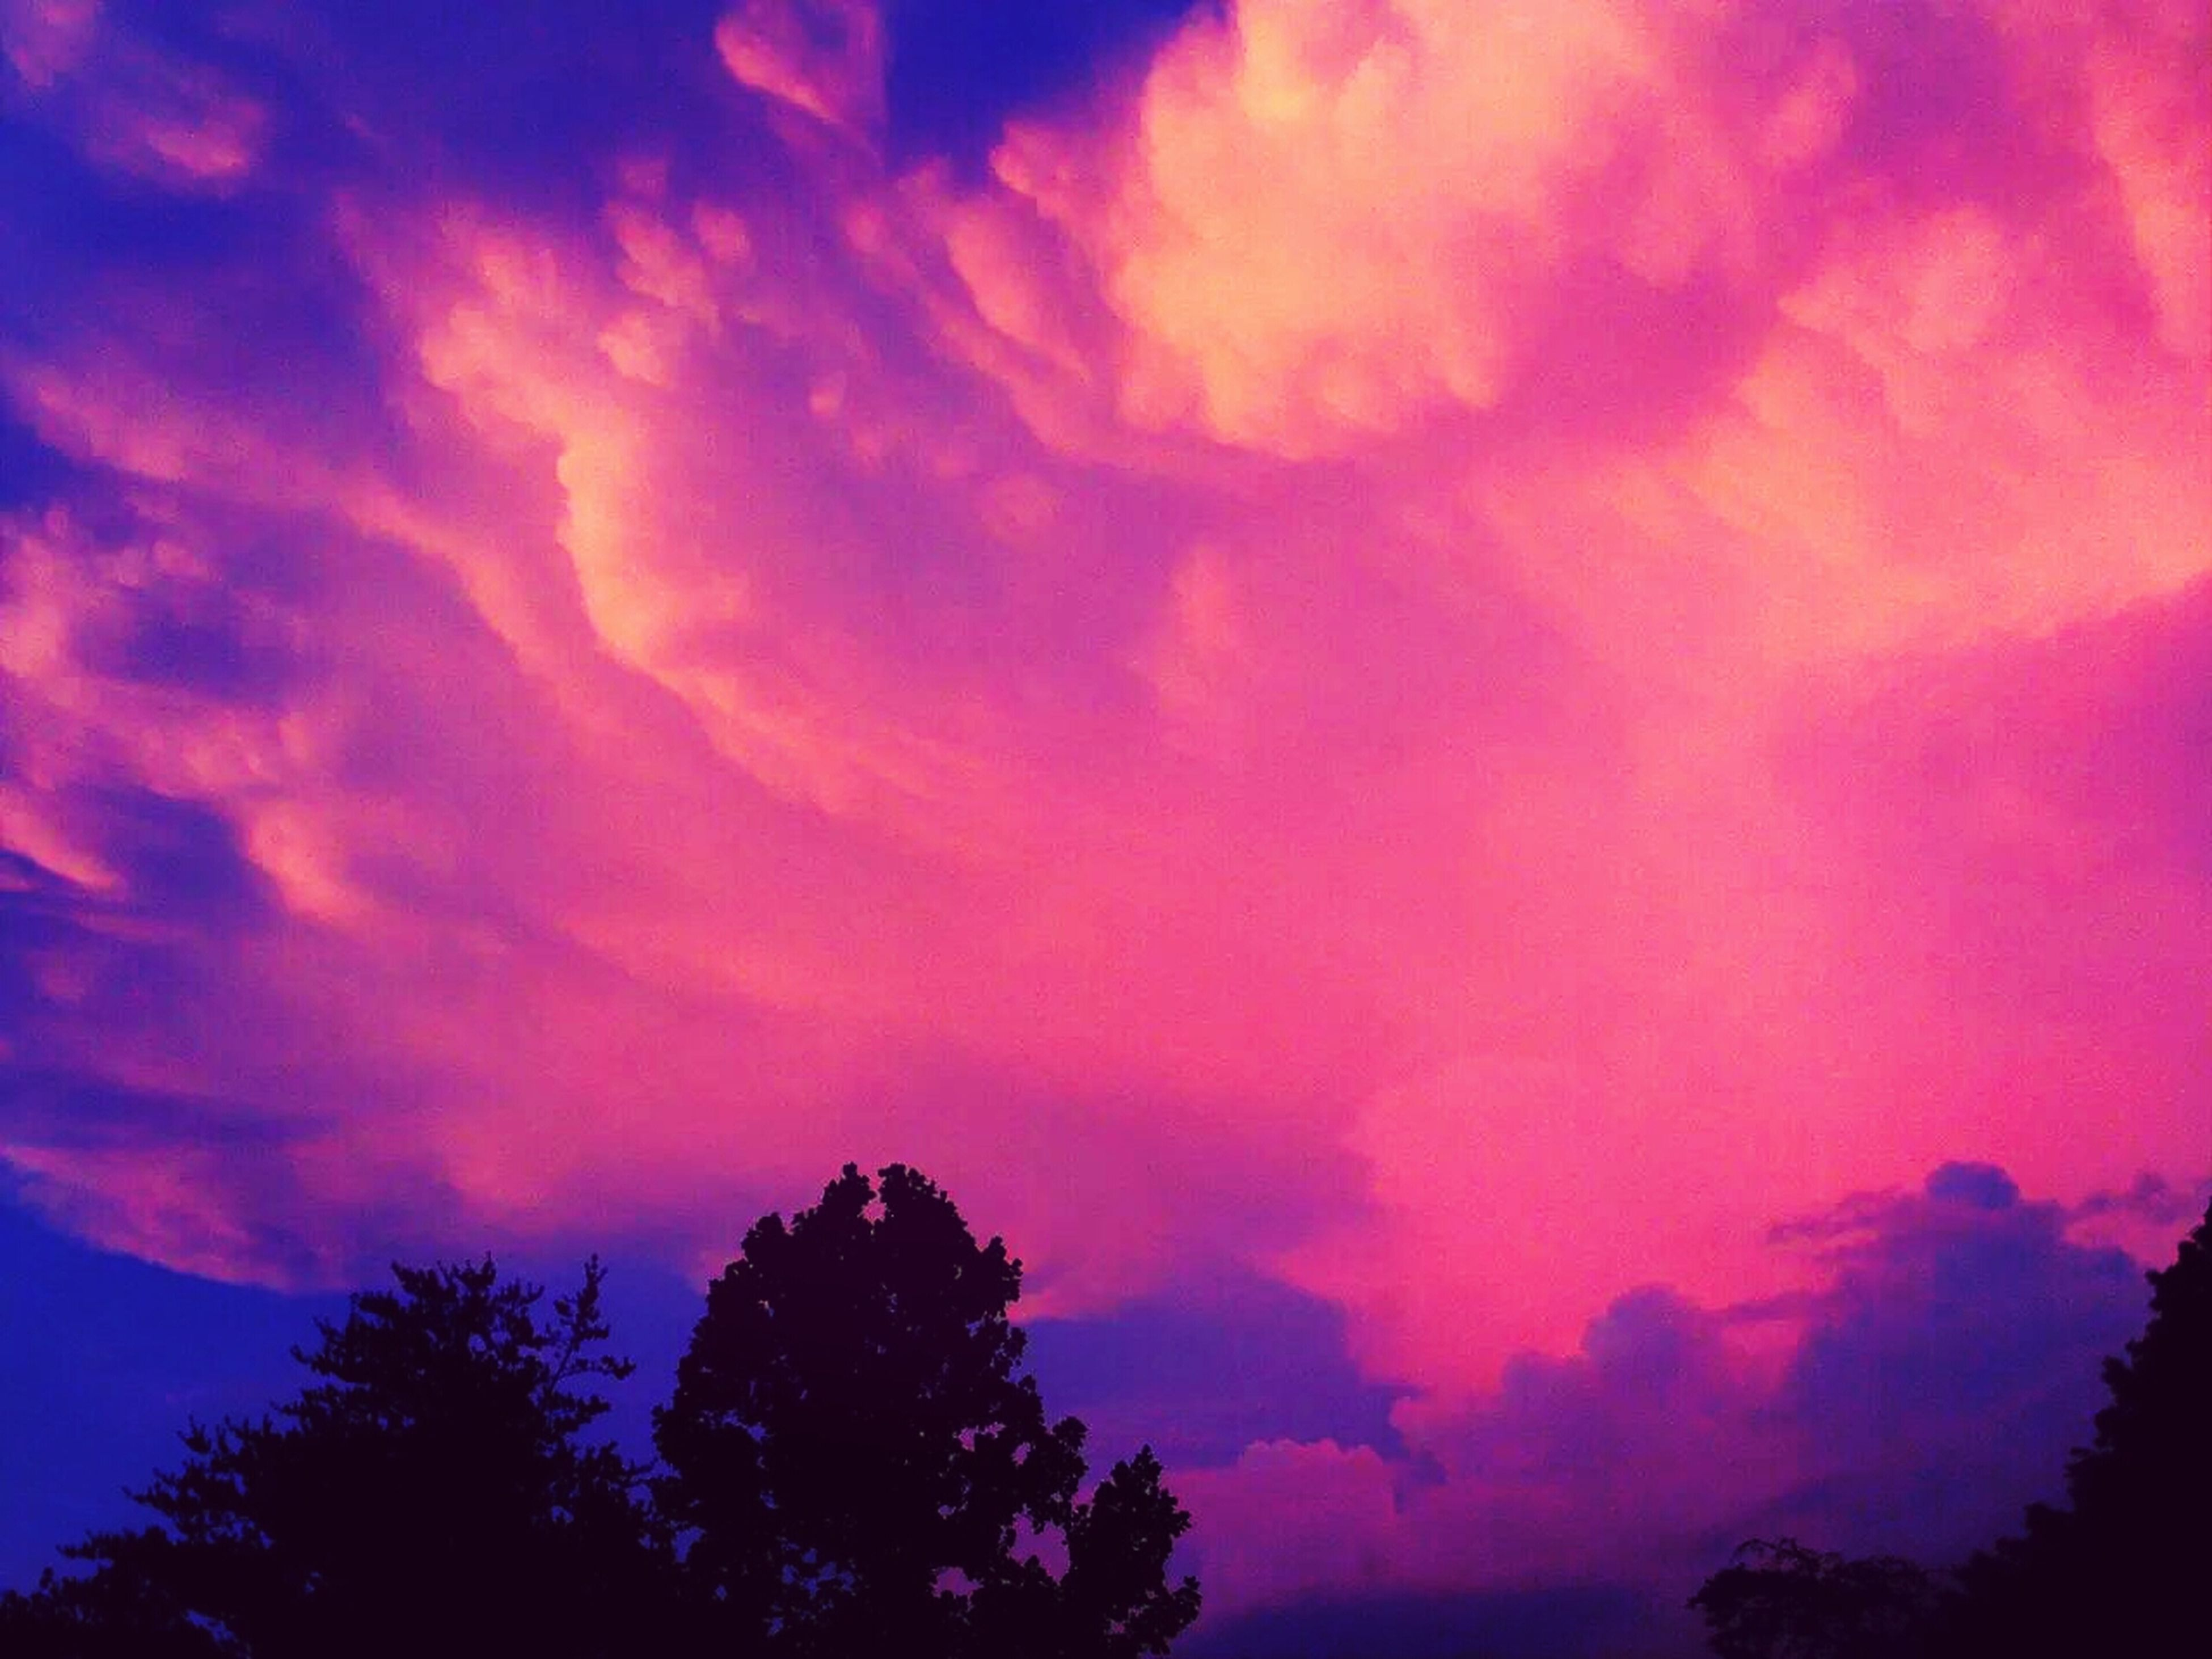 sky, low angle view, silhouette, beauty in nature, cloud - sky, scenics, tree, sunset, tranquility, tranquil scene, dramatic sky, nature, cloudy, idyllic, orange color, cloud, majestic, dusk, outdoors, atmospheric mood